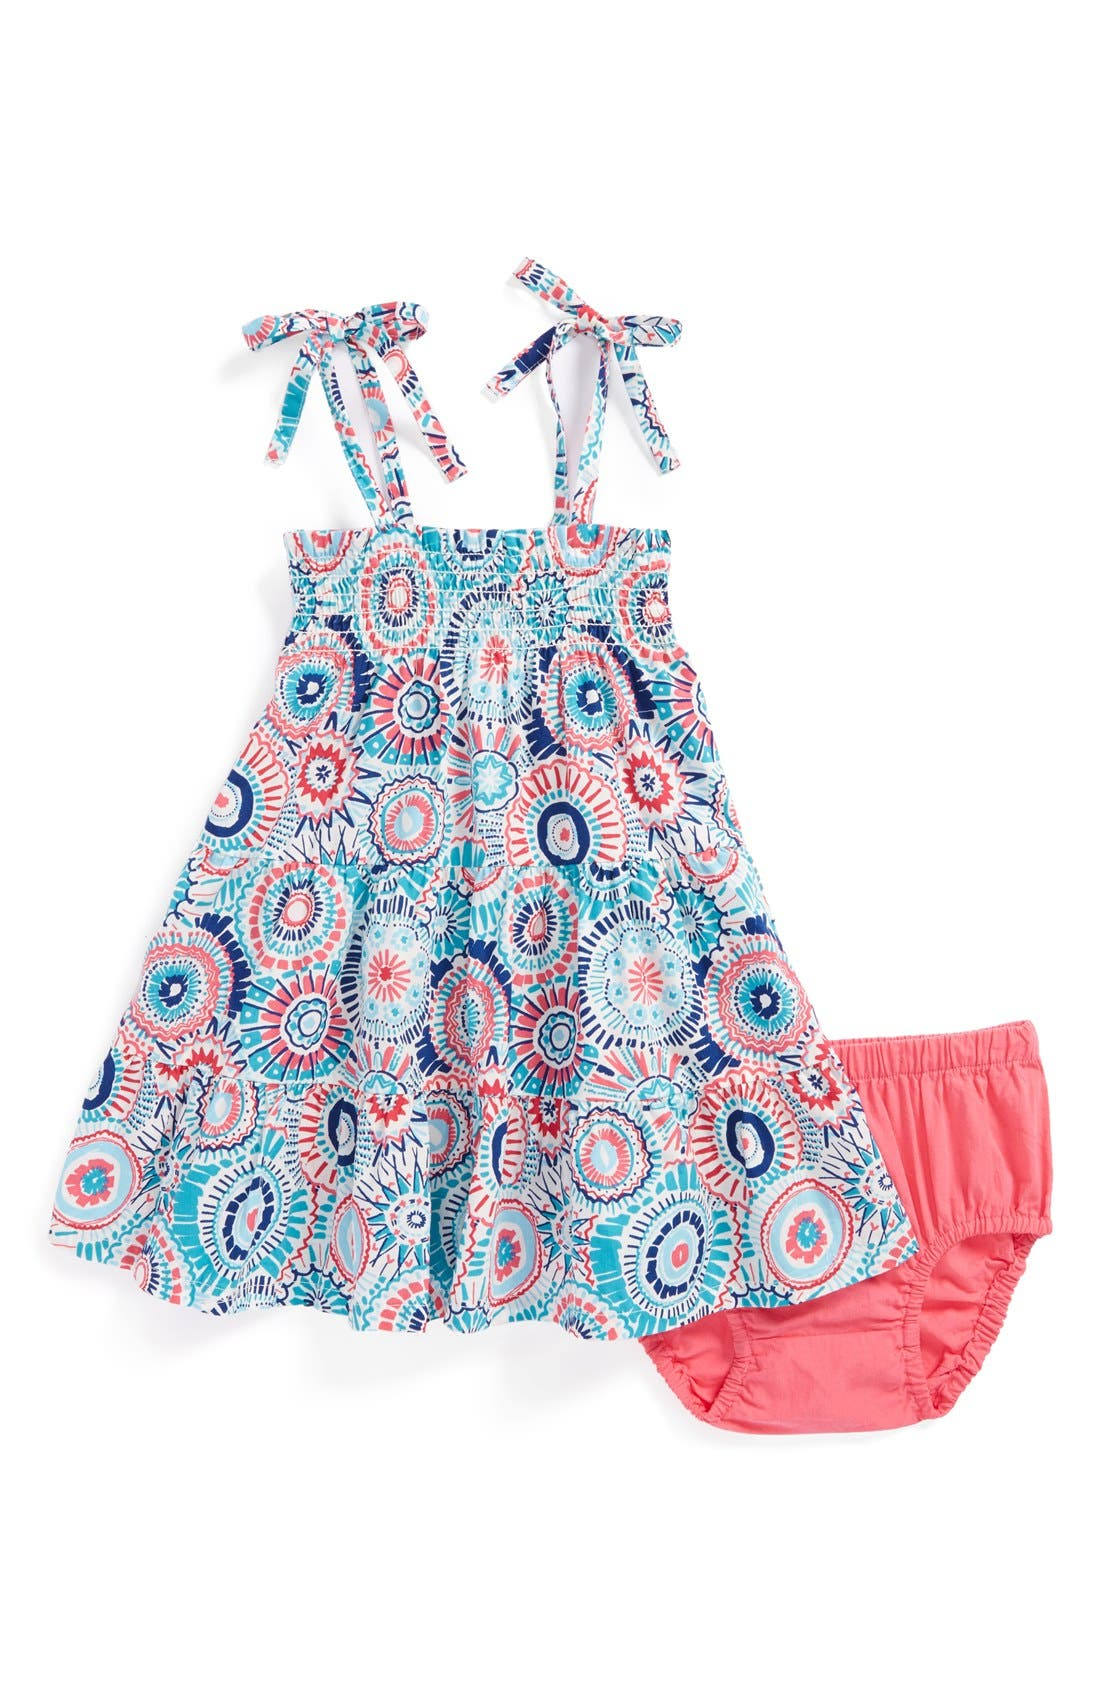 Alternate Image 1 Selected - Tea Collection 'Sea Anemone' Shoulder Tie Sundress (Baby Girls)